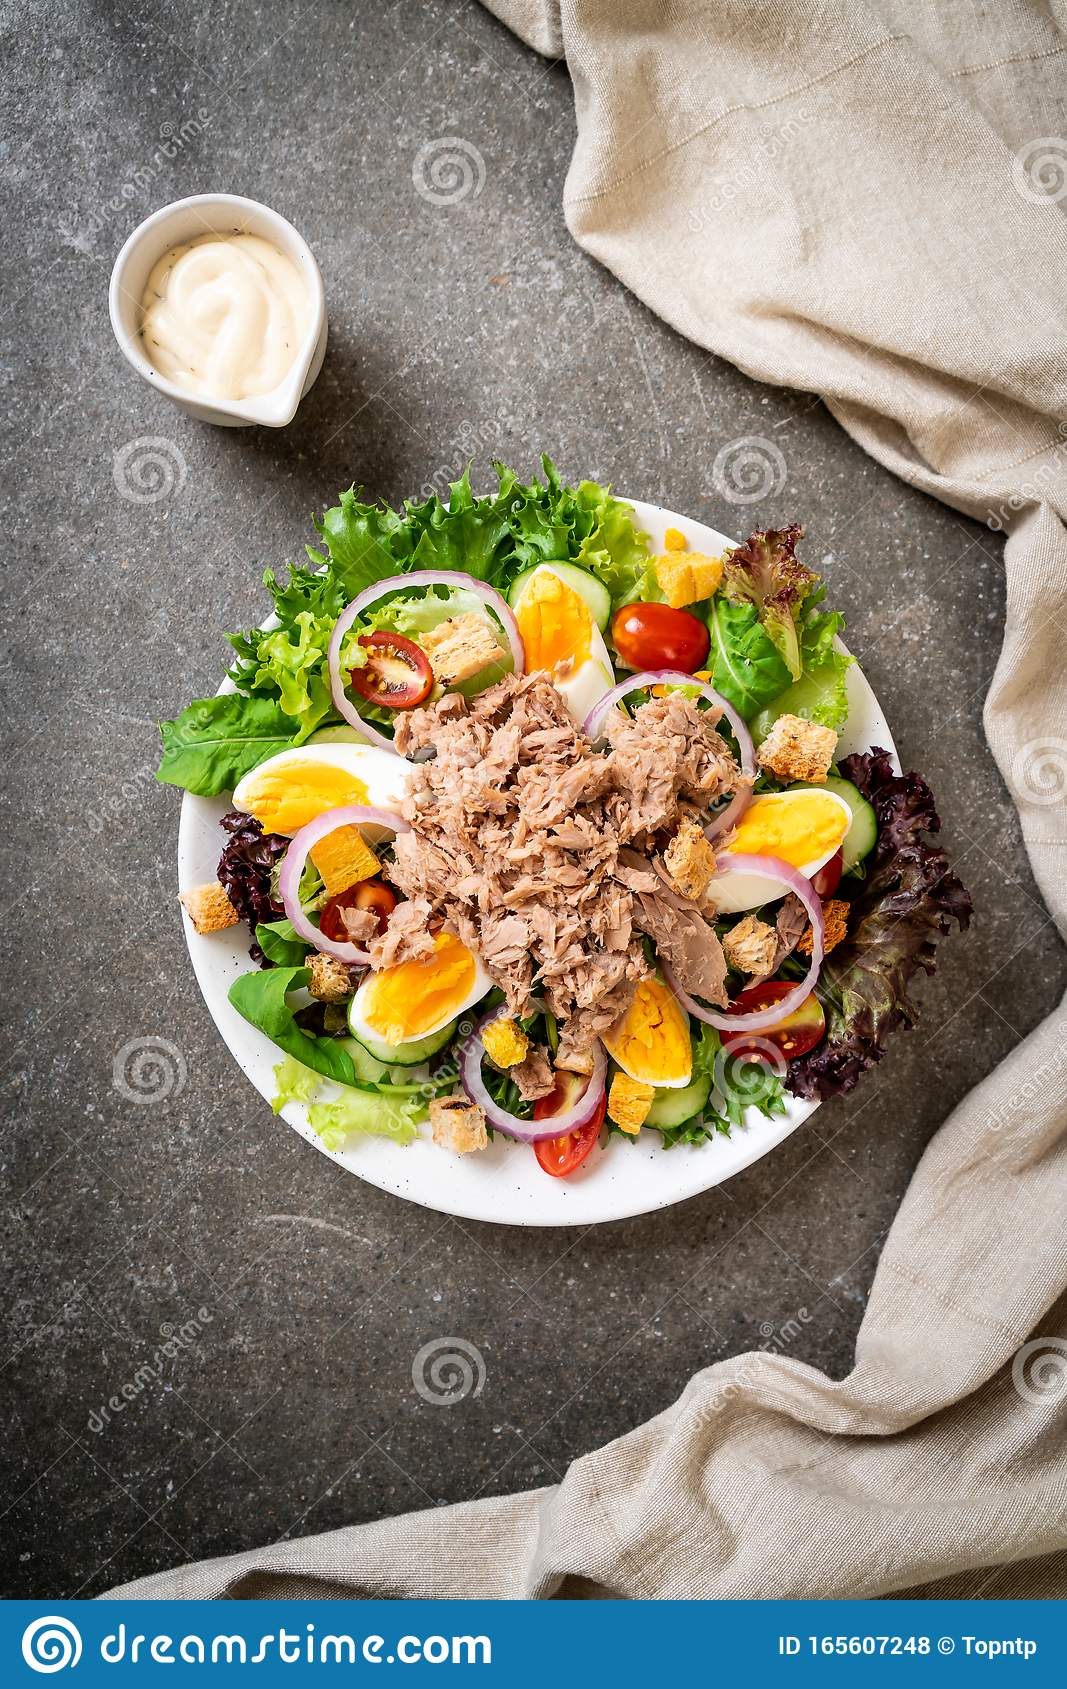 Tuna with vegetable salad and eggs